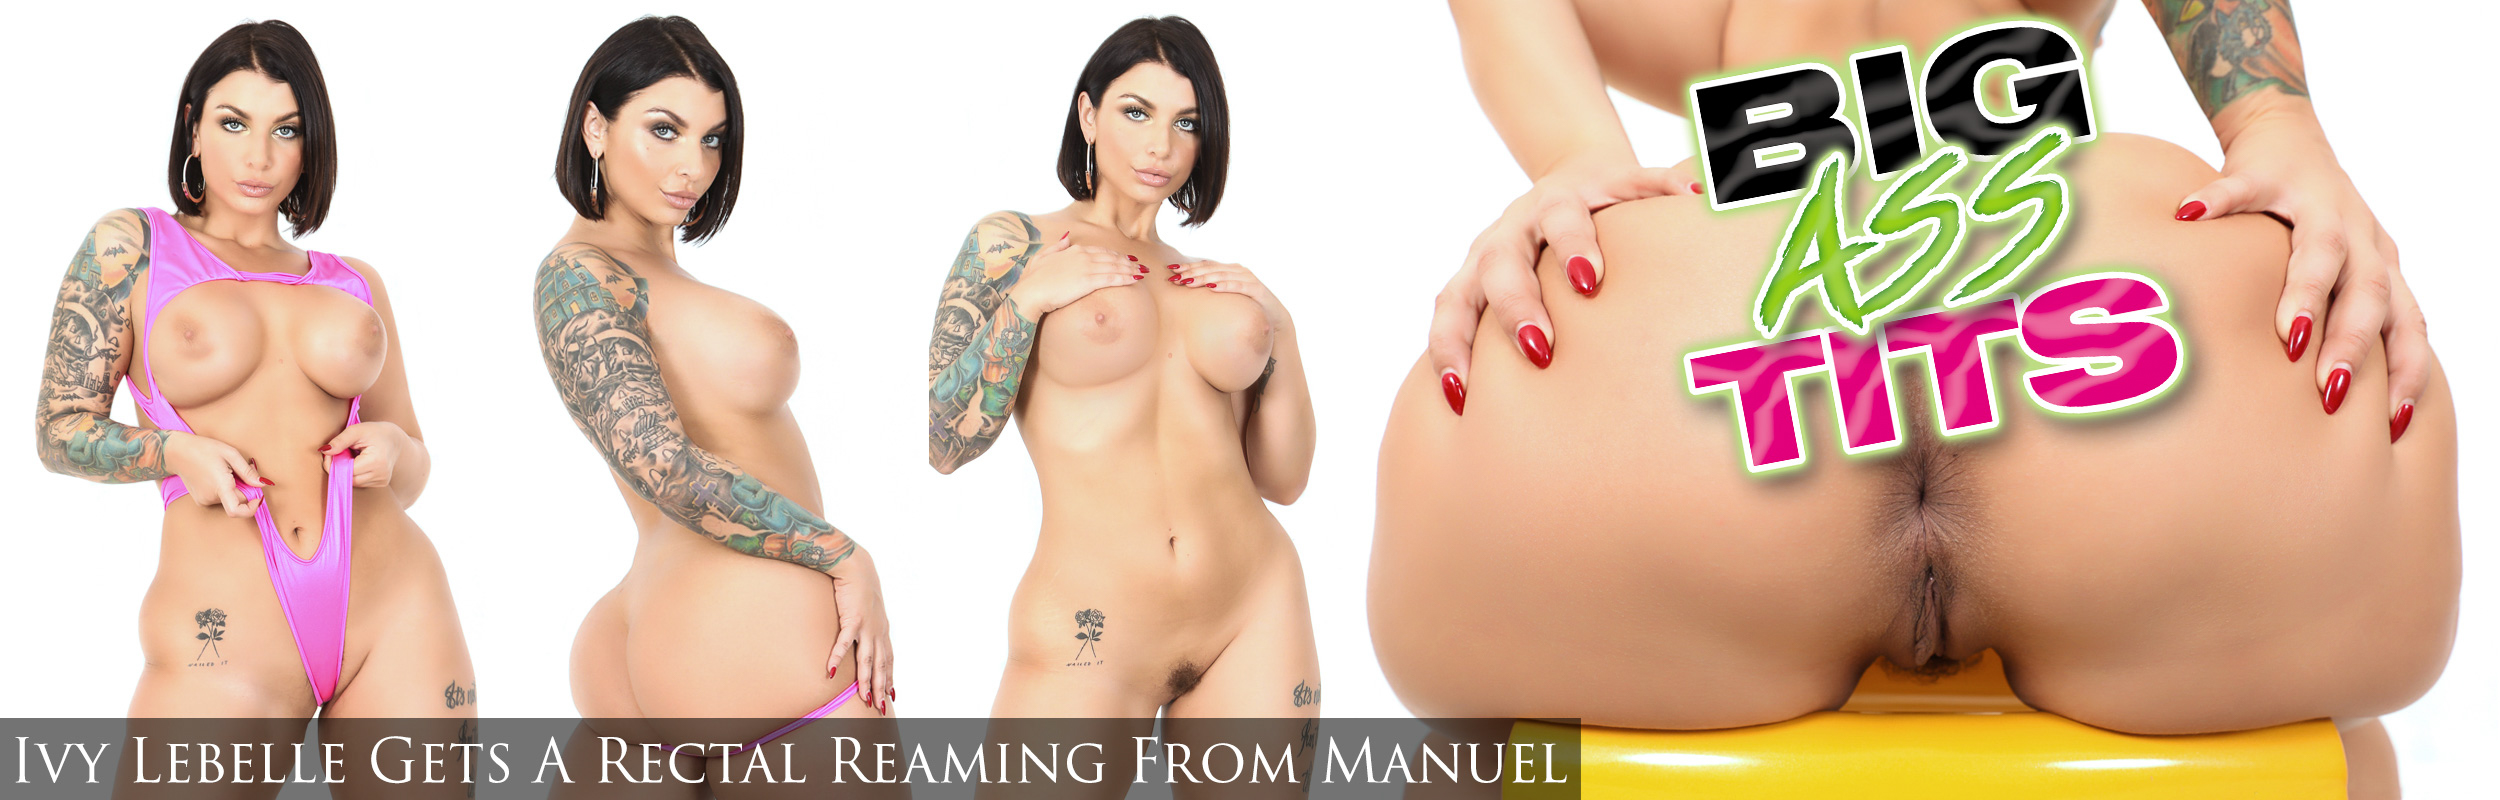 Ivy Lebelle Gets A Rectal Reaming From Manuel